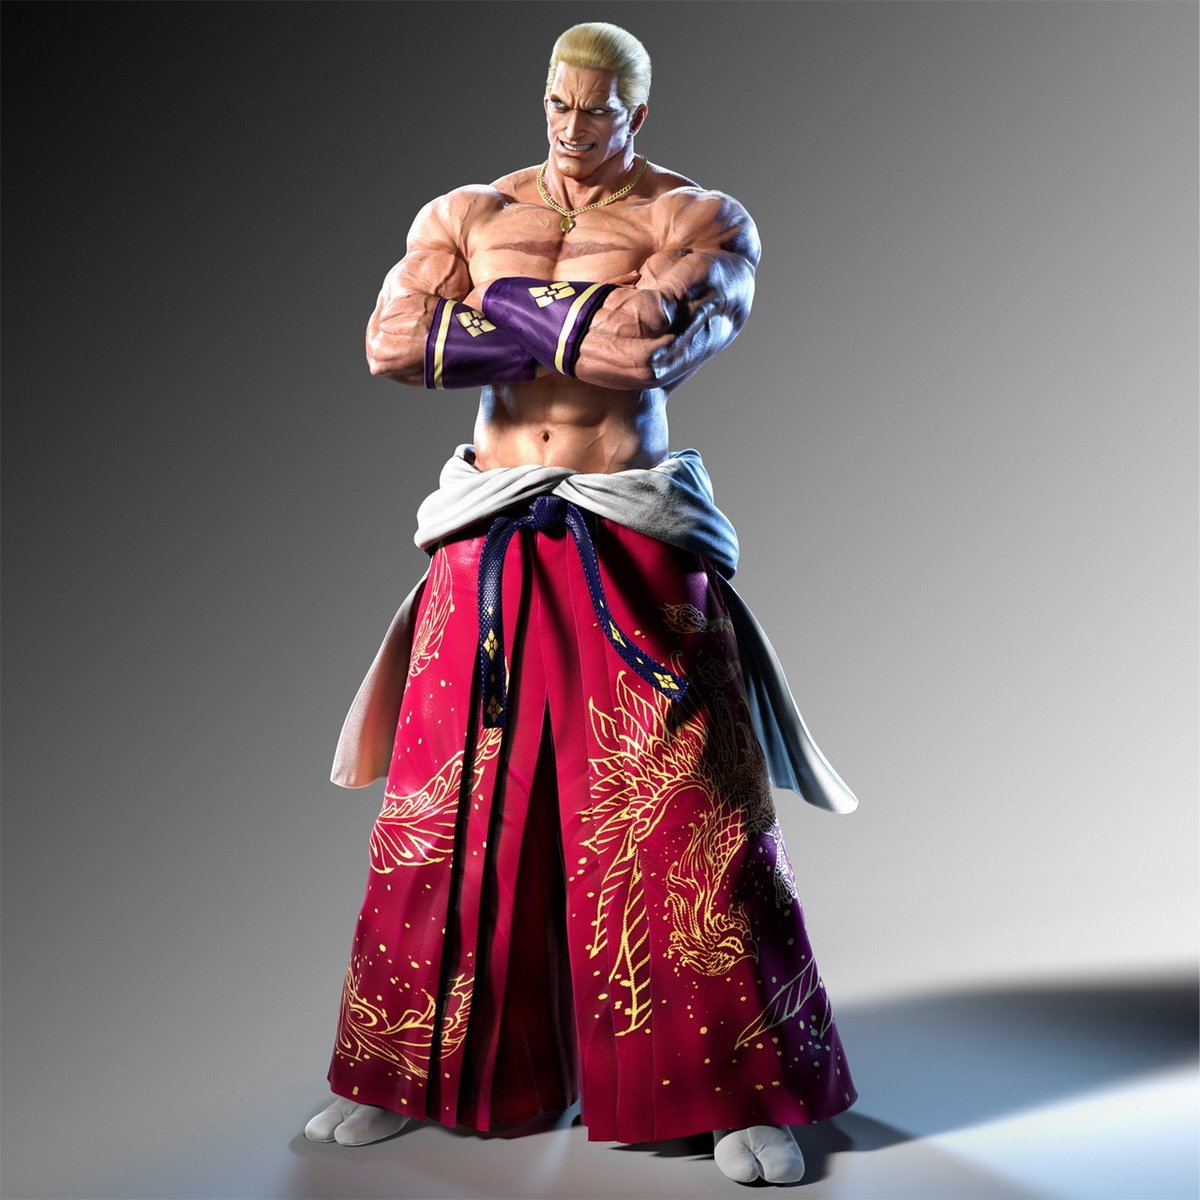 Geese Howard Tekken Wiki Fandom Rock is not fond of his father or his own legacy at all, and often struggles with his power, turning him into a very introspective person. geese howard tekken wiki fandom